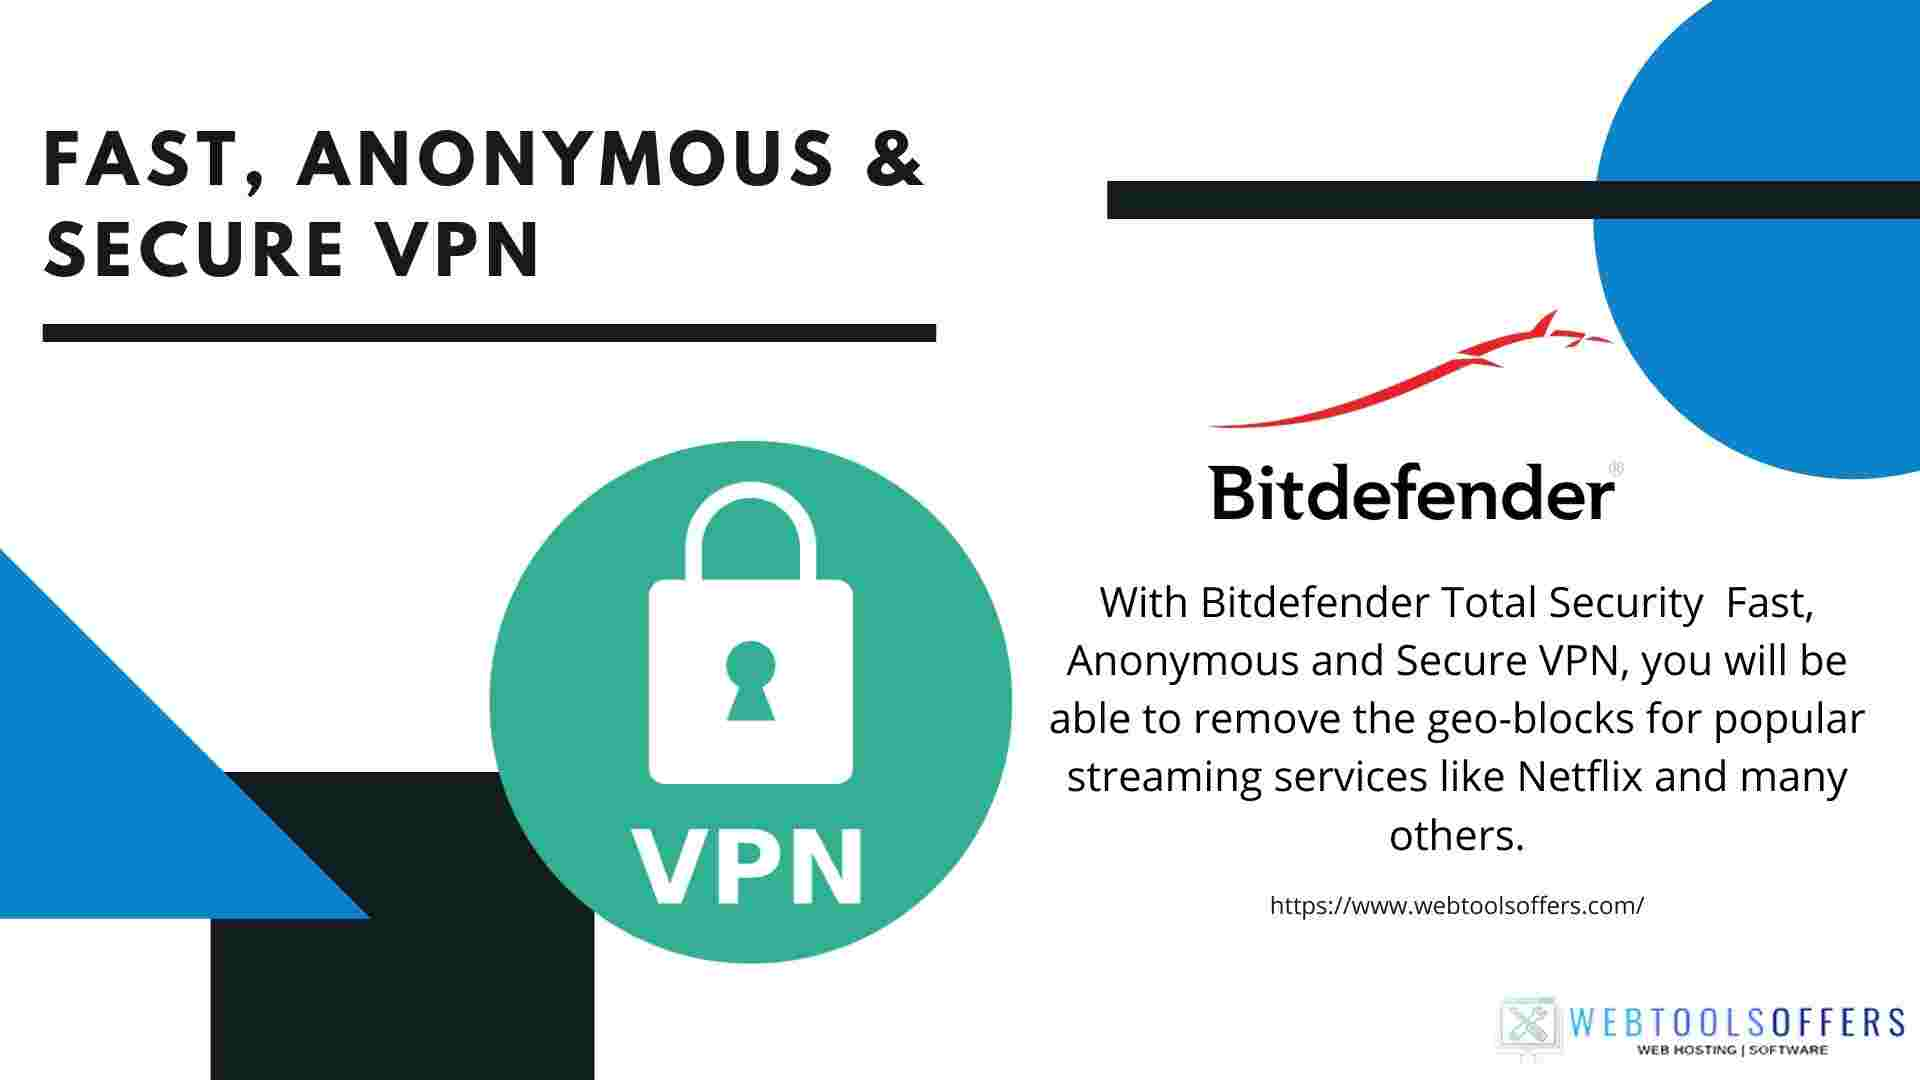 Fast, Anonymous and Secure VPN